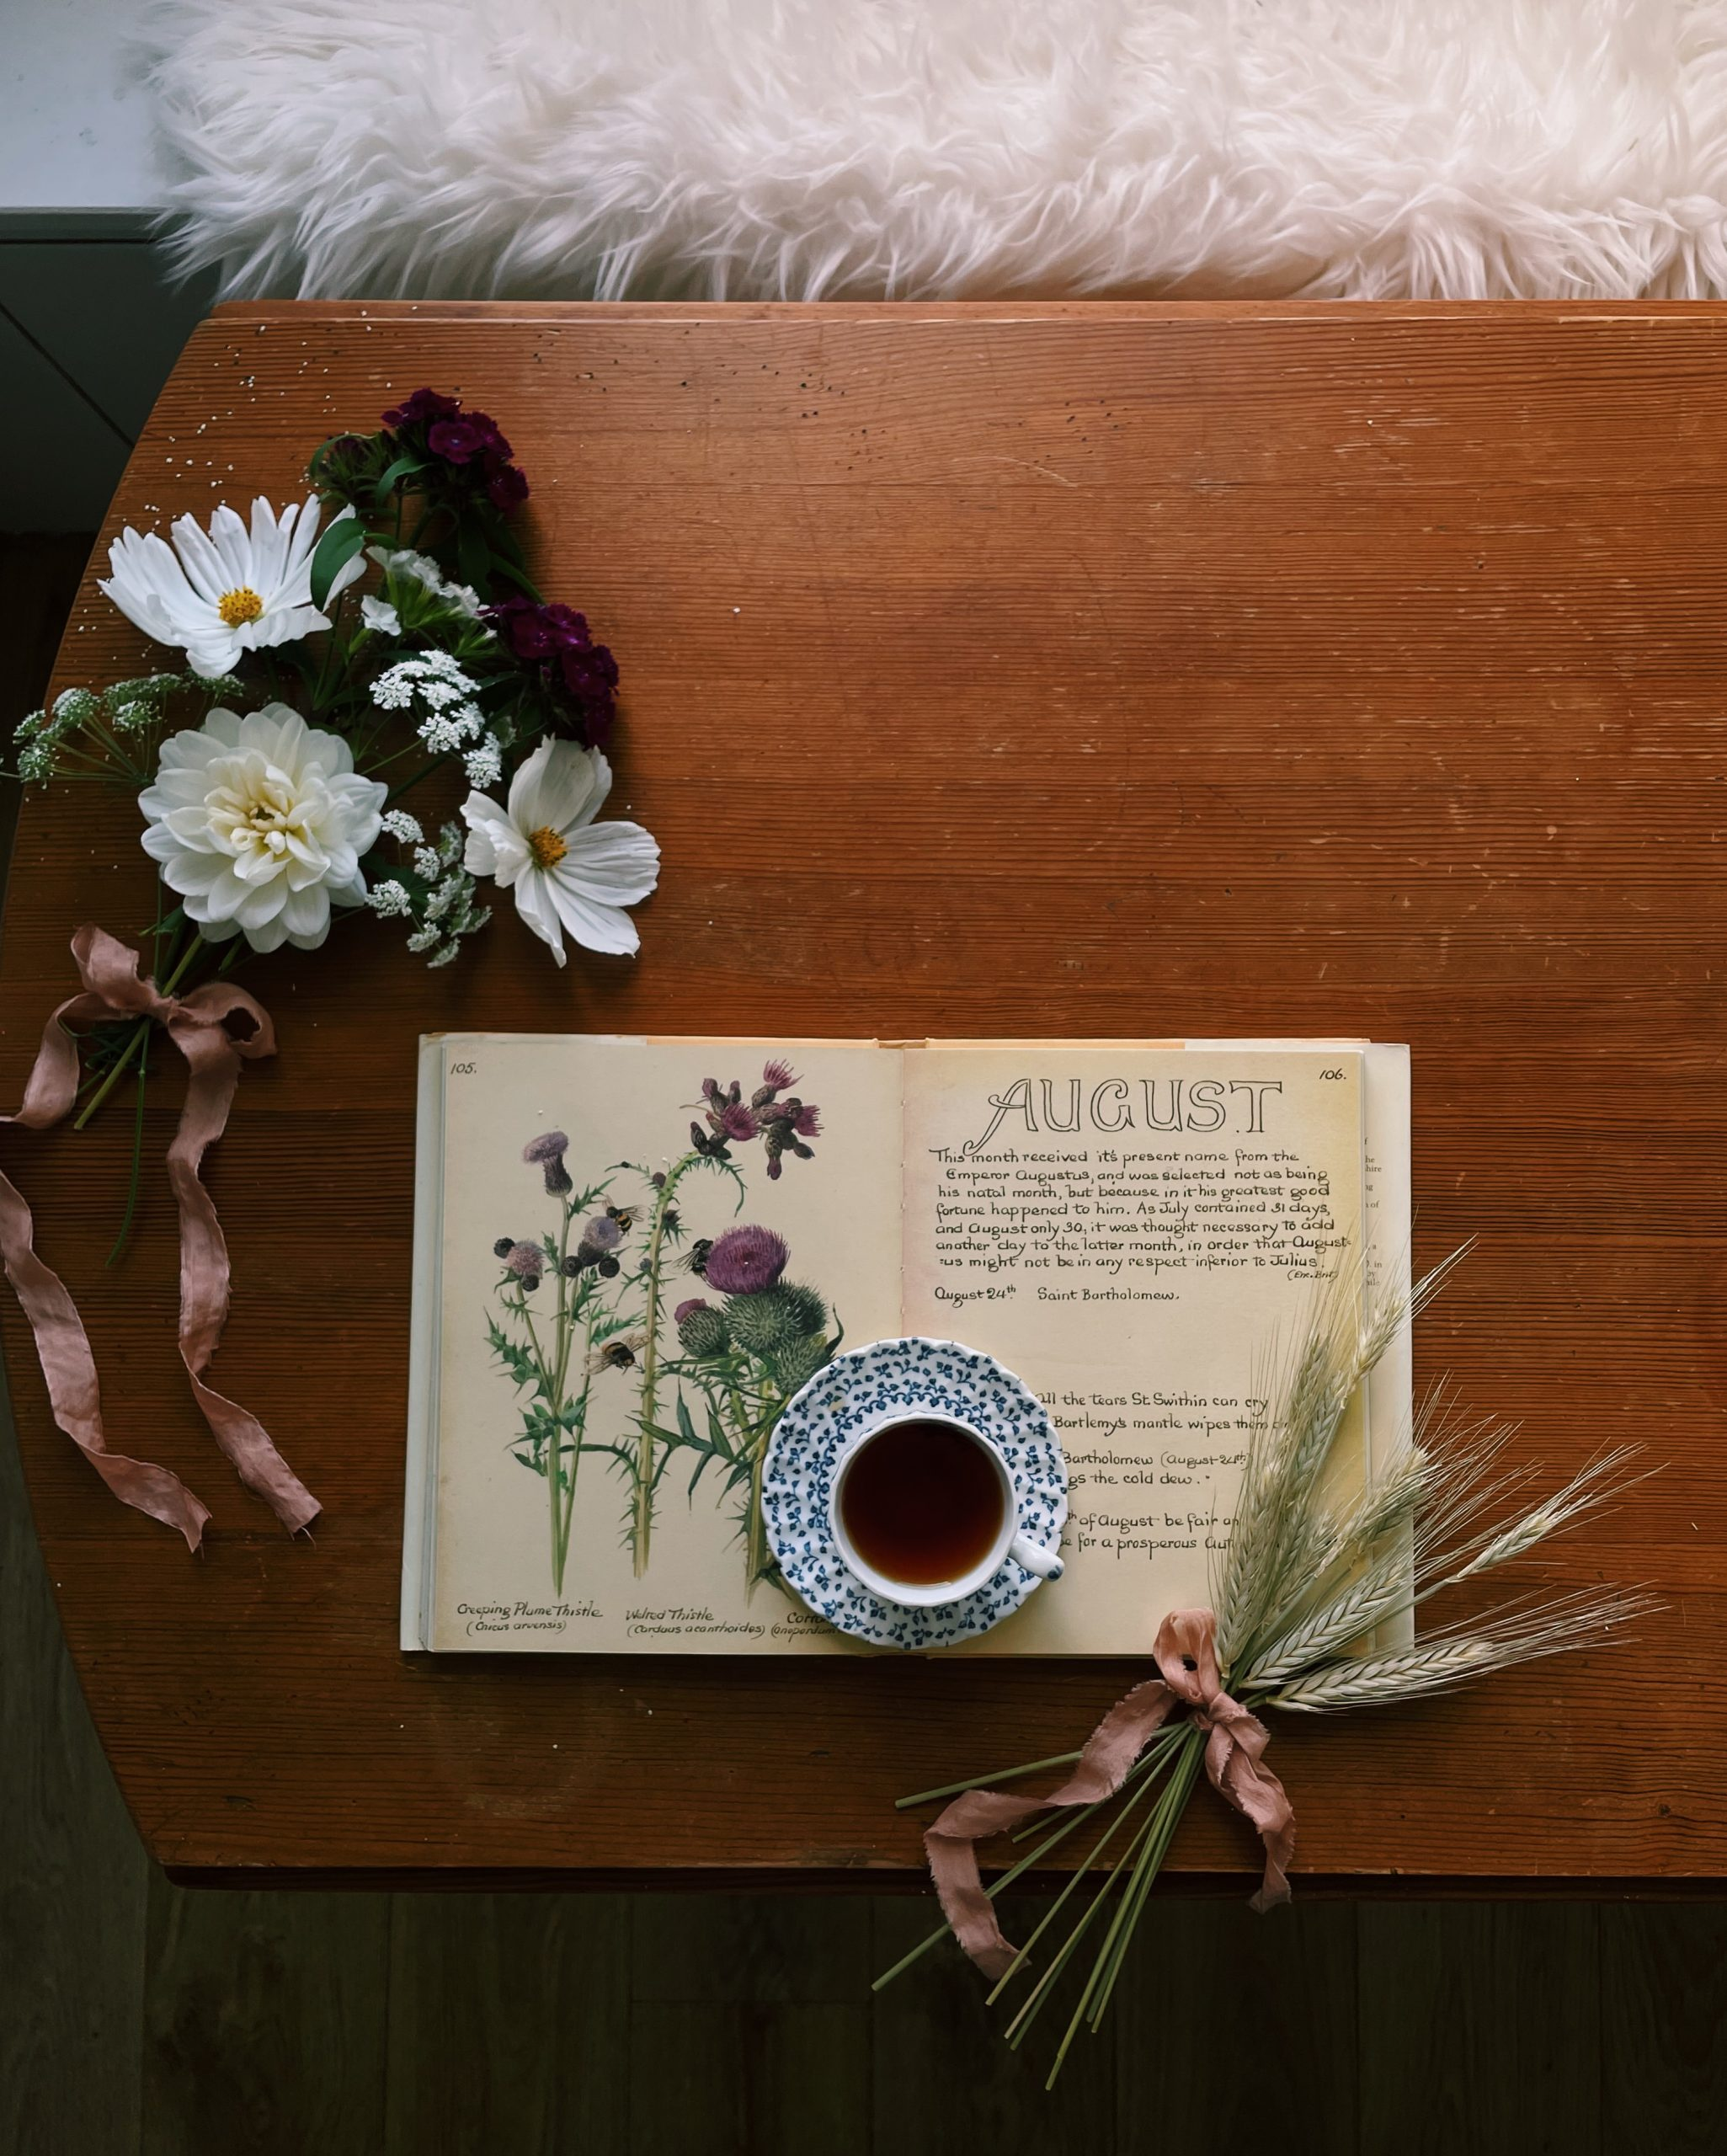 August Slow Living Tips